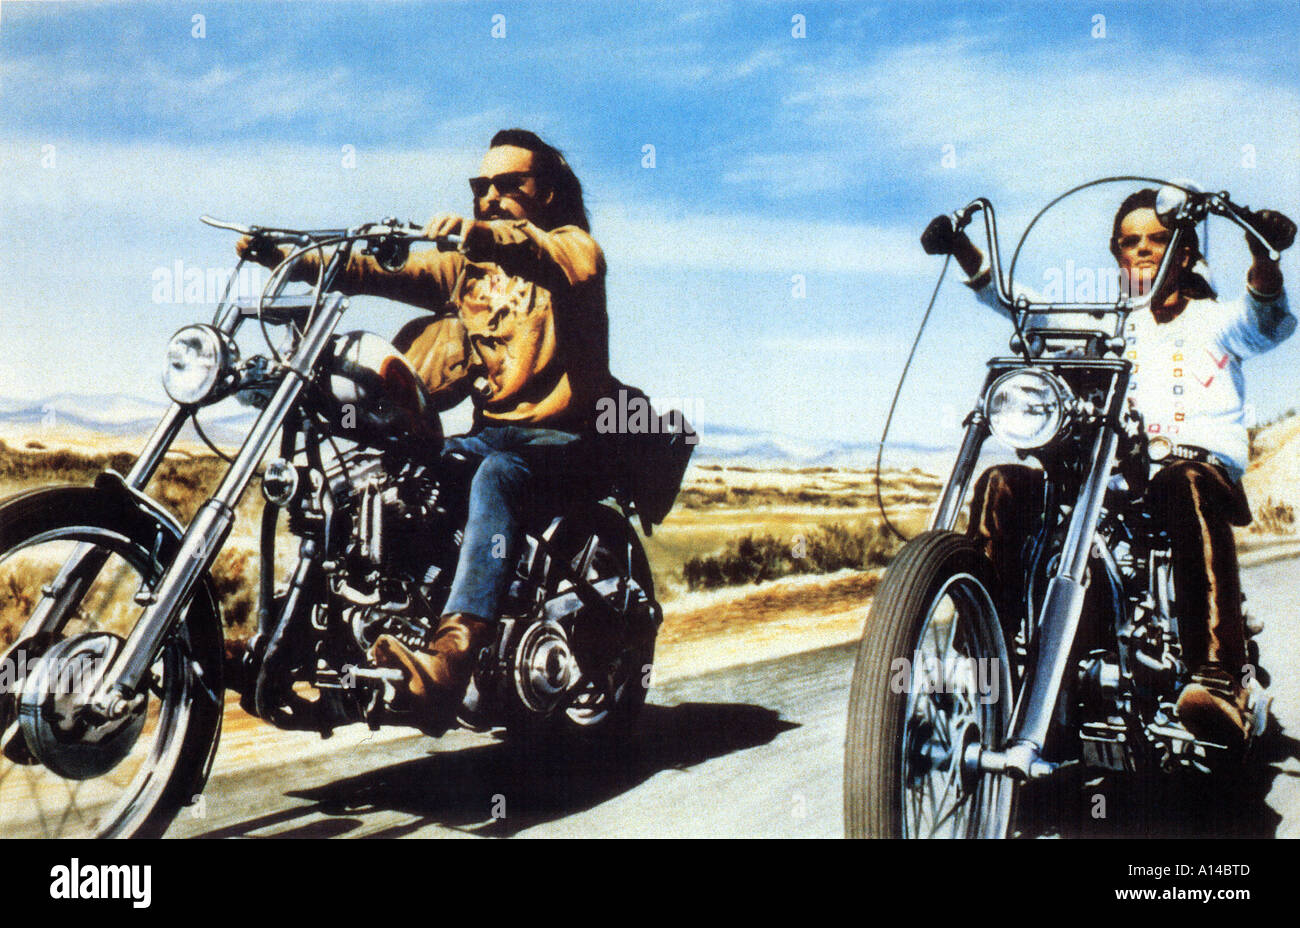 Easy Rider | www.pixshark.com - Images Galleries With A Bite!